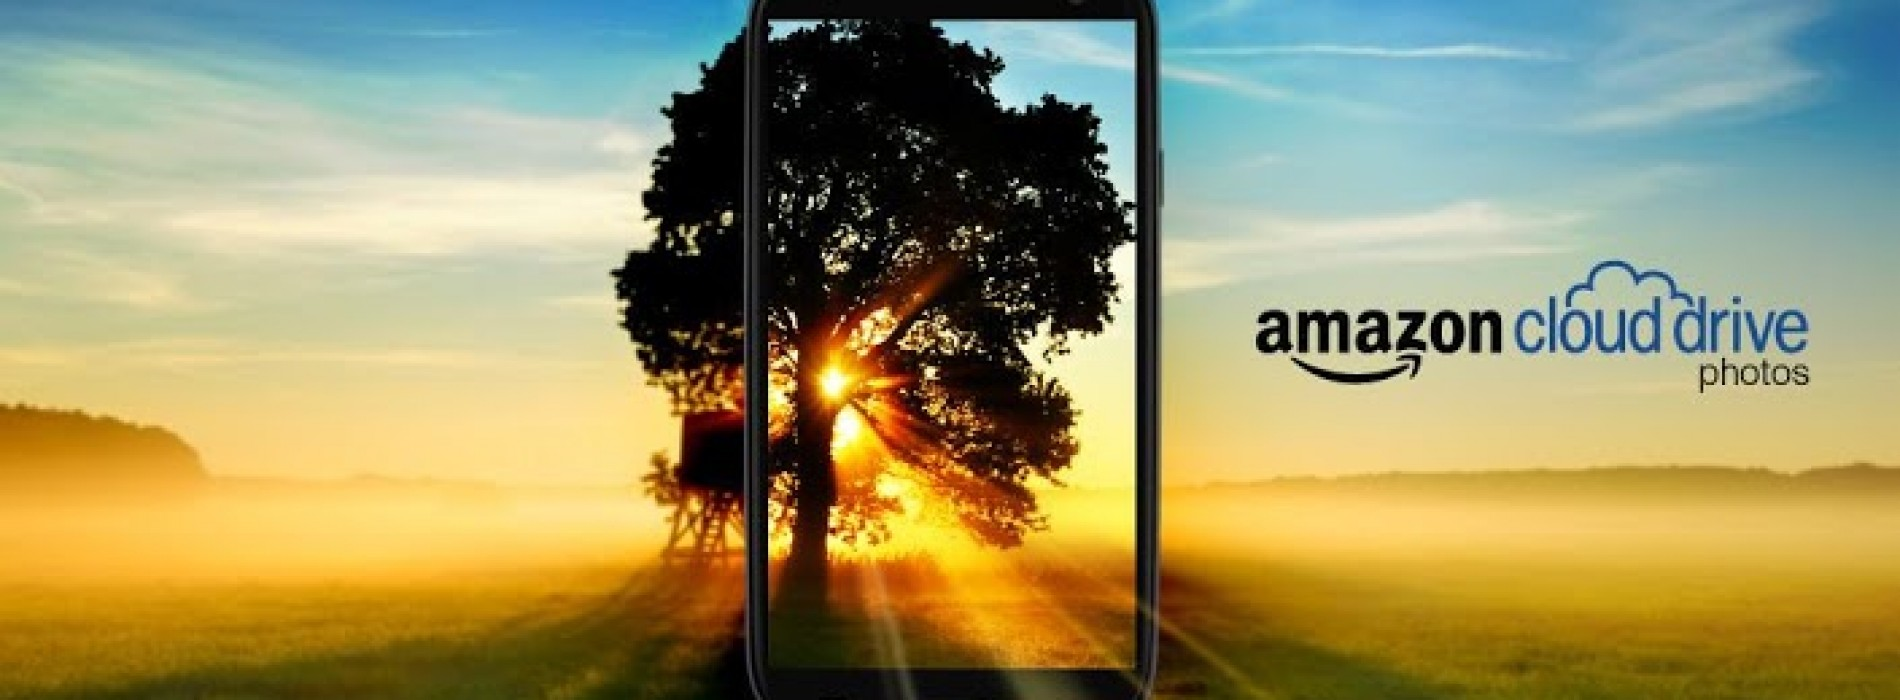 Amazon releases Amazon Cloud Photo for Android devices